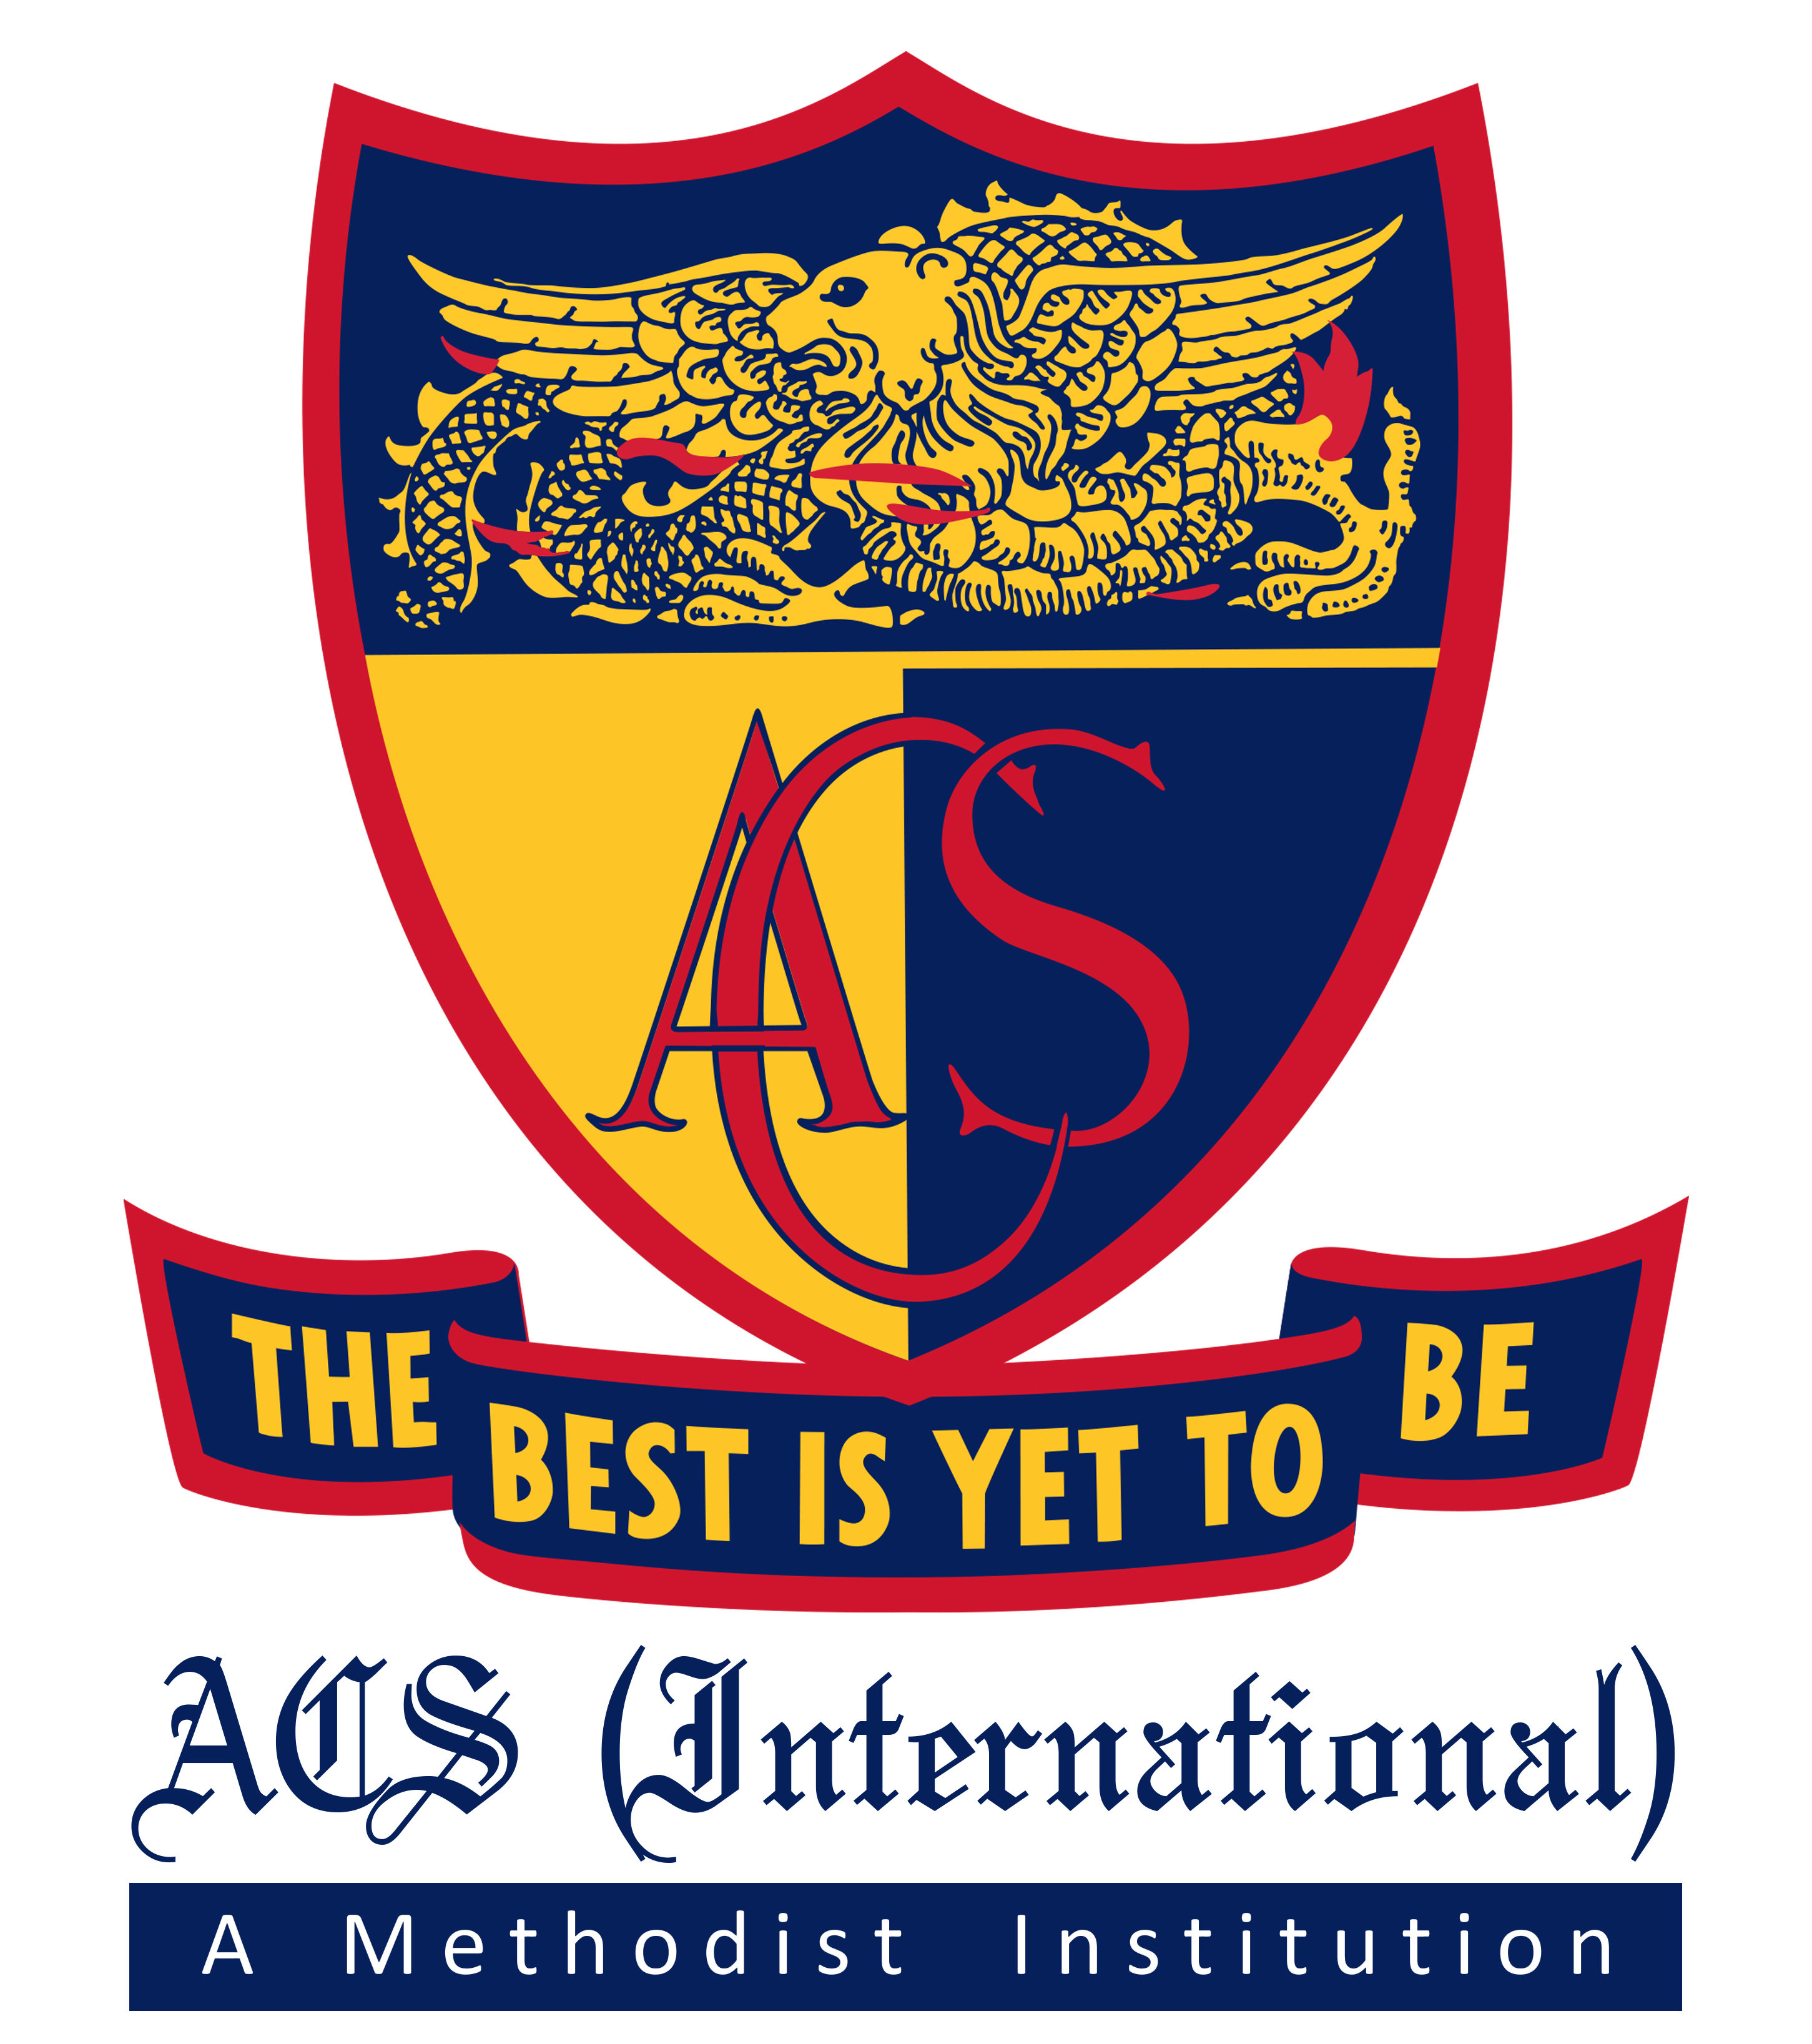 Acs methodist institution